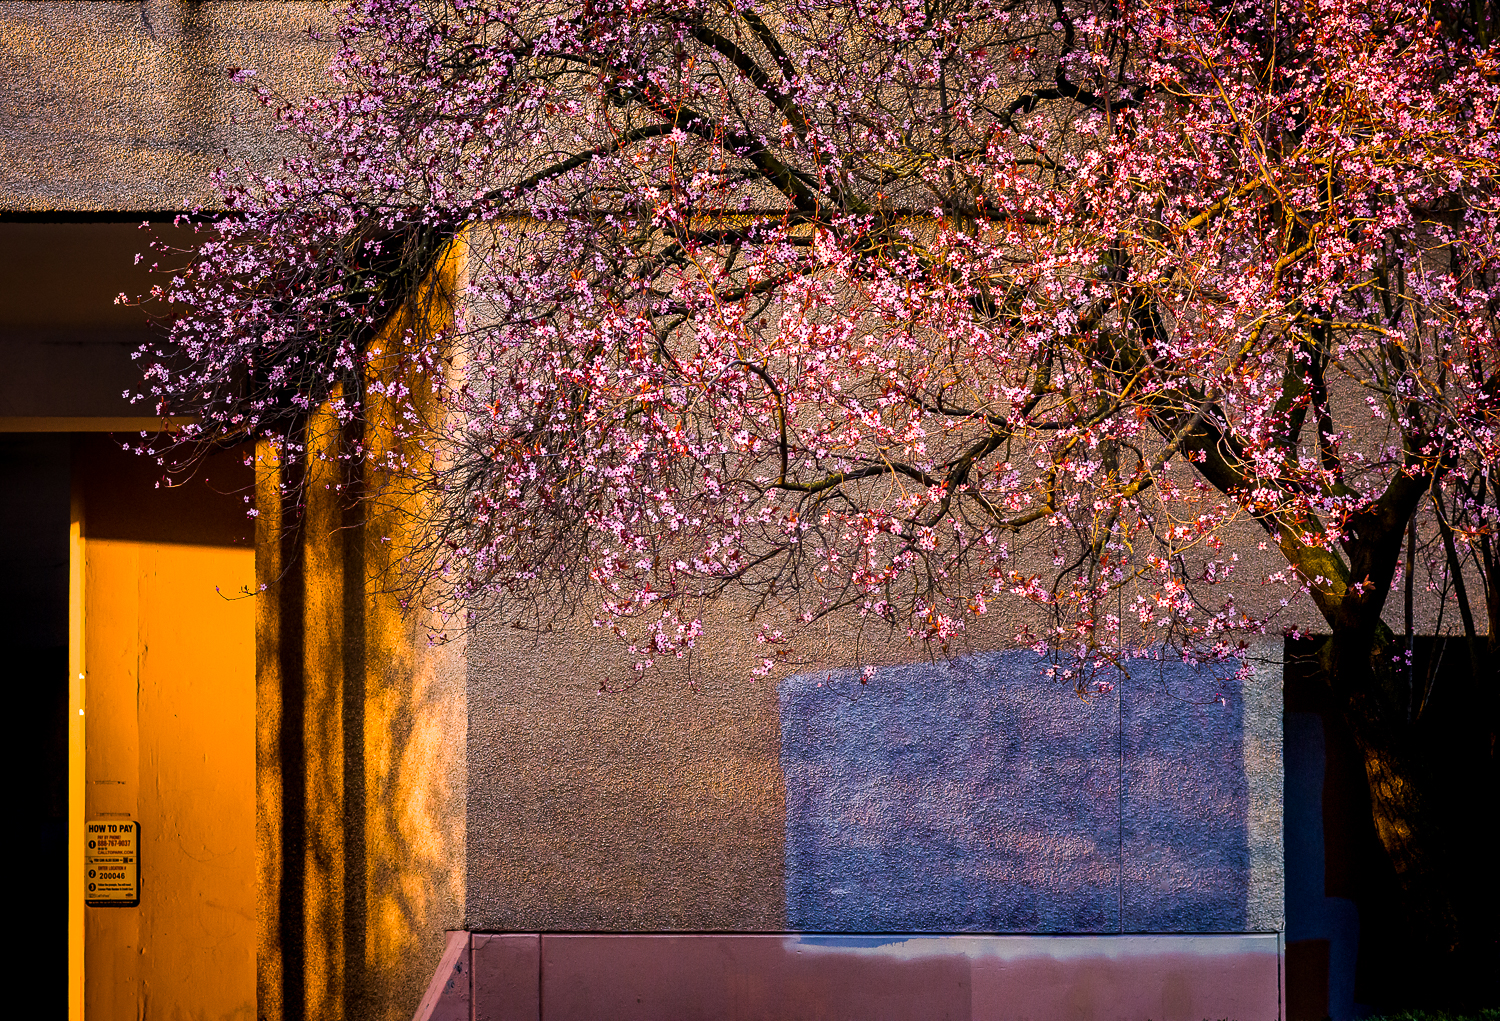 Urban Cherry Blossoms   Photo by Kevin Ehlers. Nikon d810, 85mm f/1.8, f5.6, 1/200